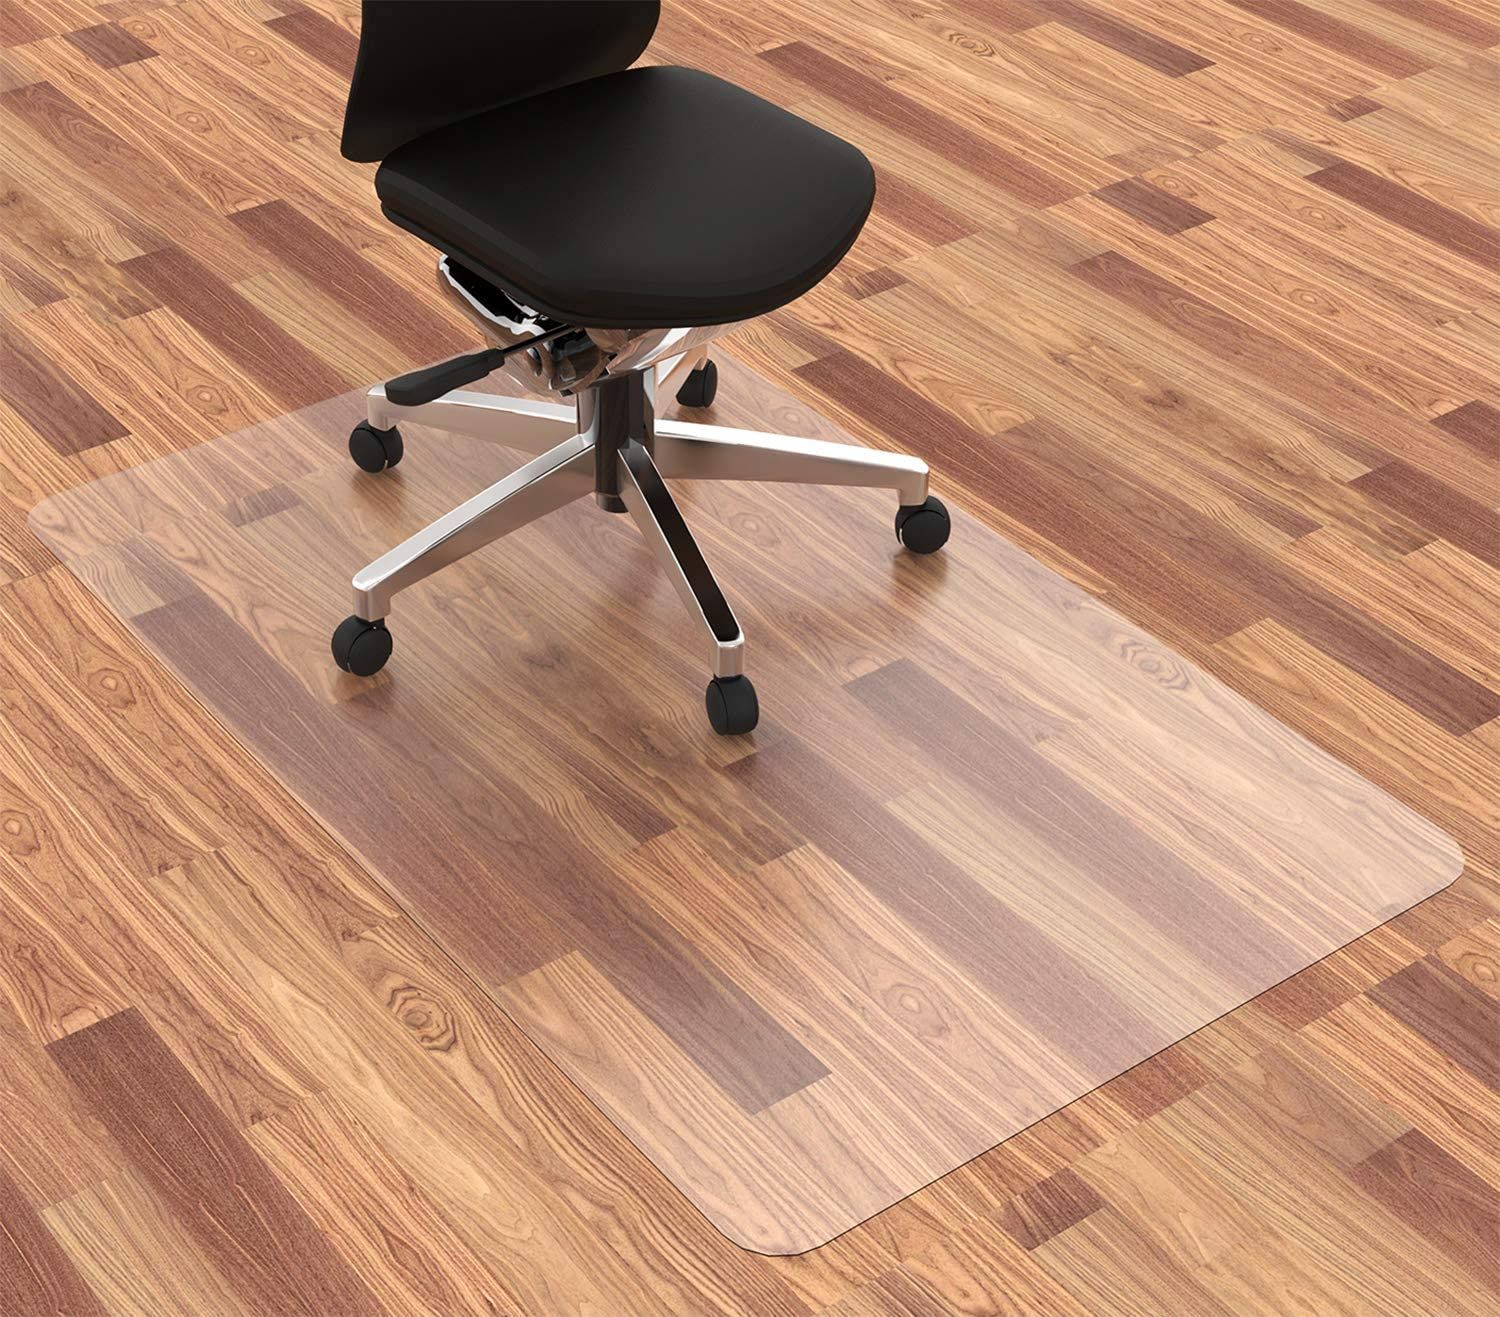 Homek Office Chair Mat for Hardwood Floor, 48 x 30 Inches Desk Chair Mat for Hard Floor, Easy Glide for Chairs: Kitchen & Dining